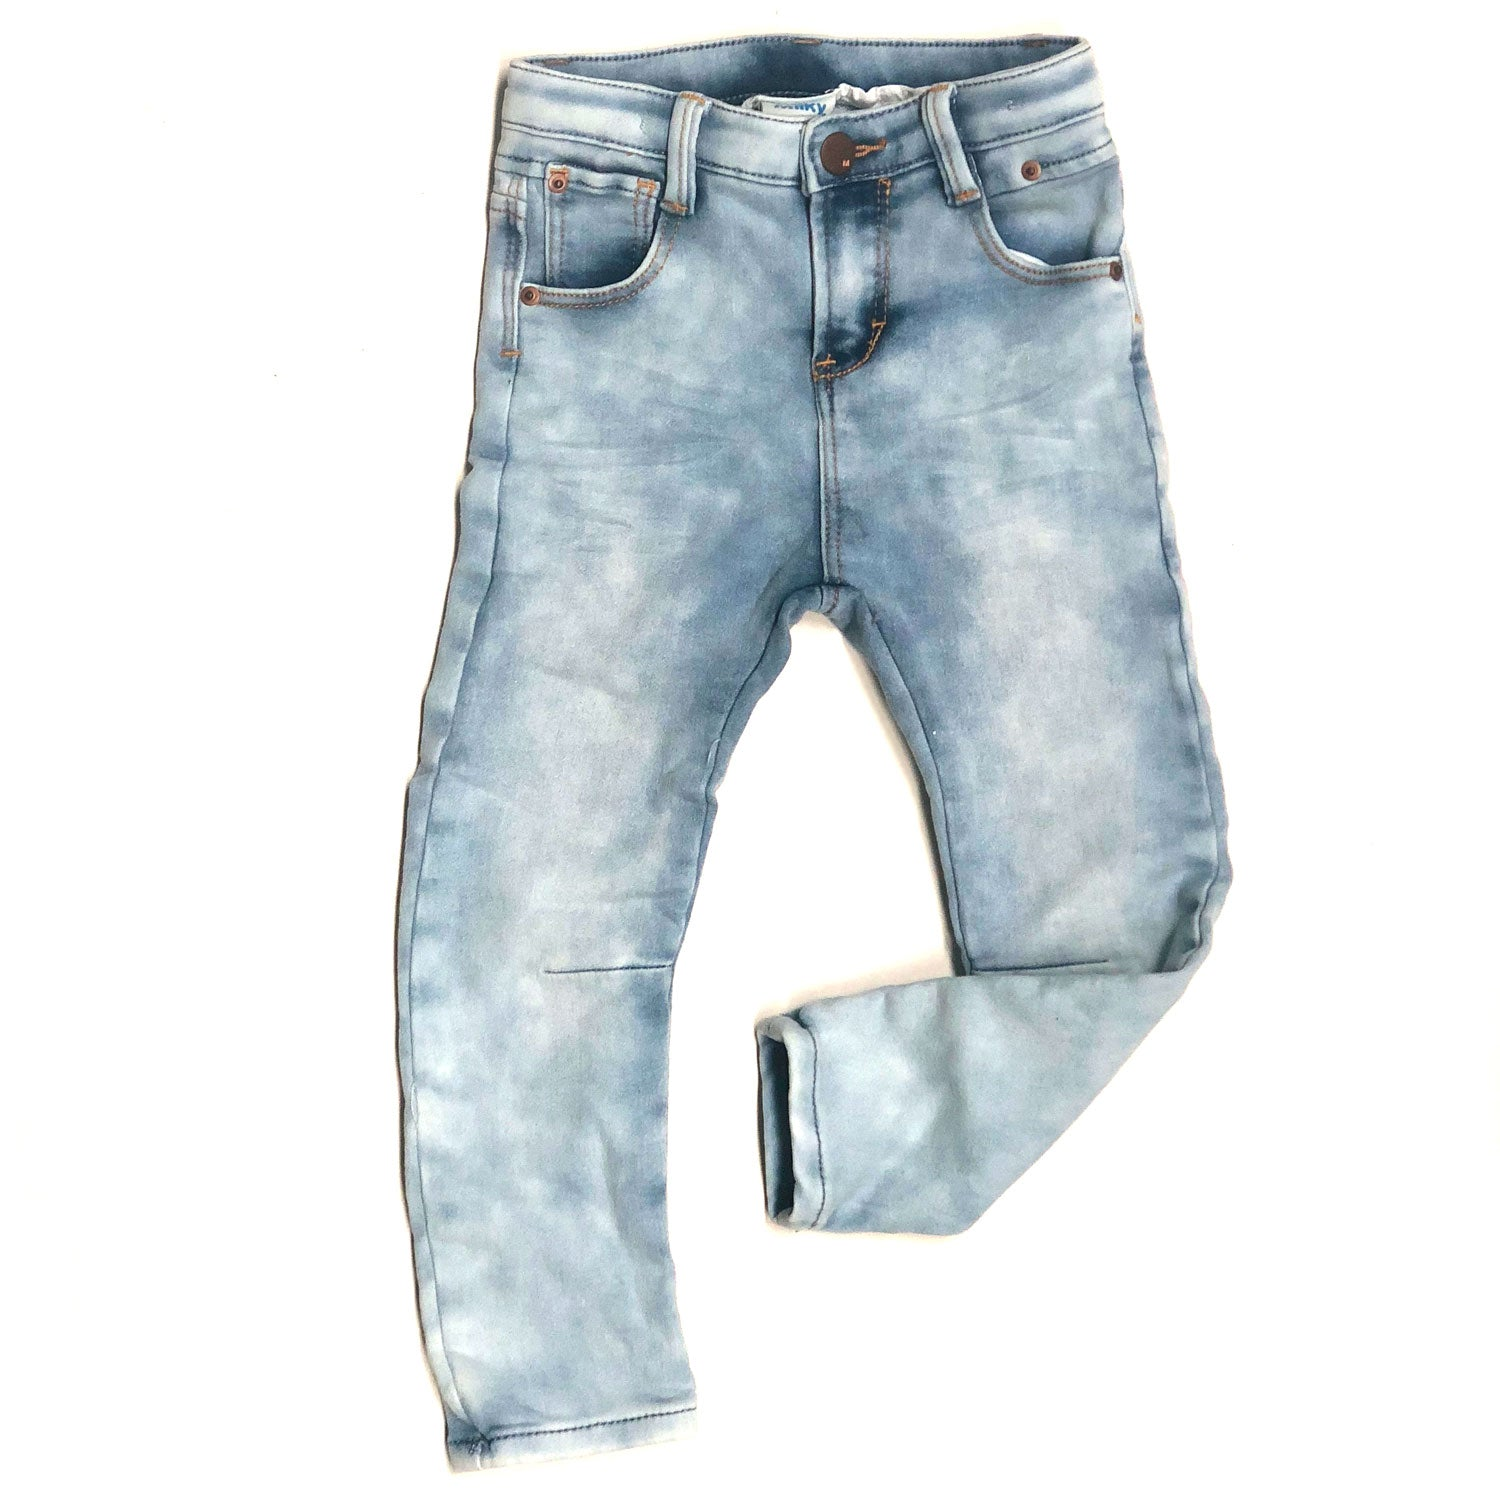 Washed Denim Knit Baby Jean